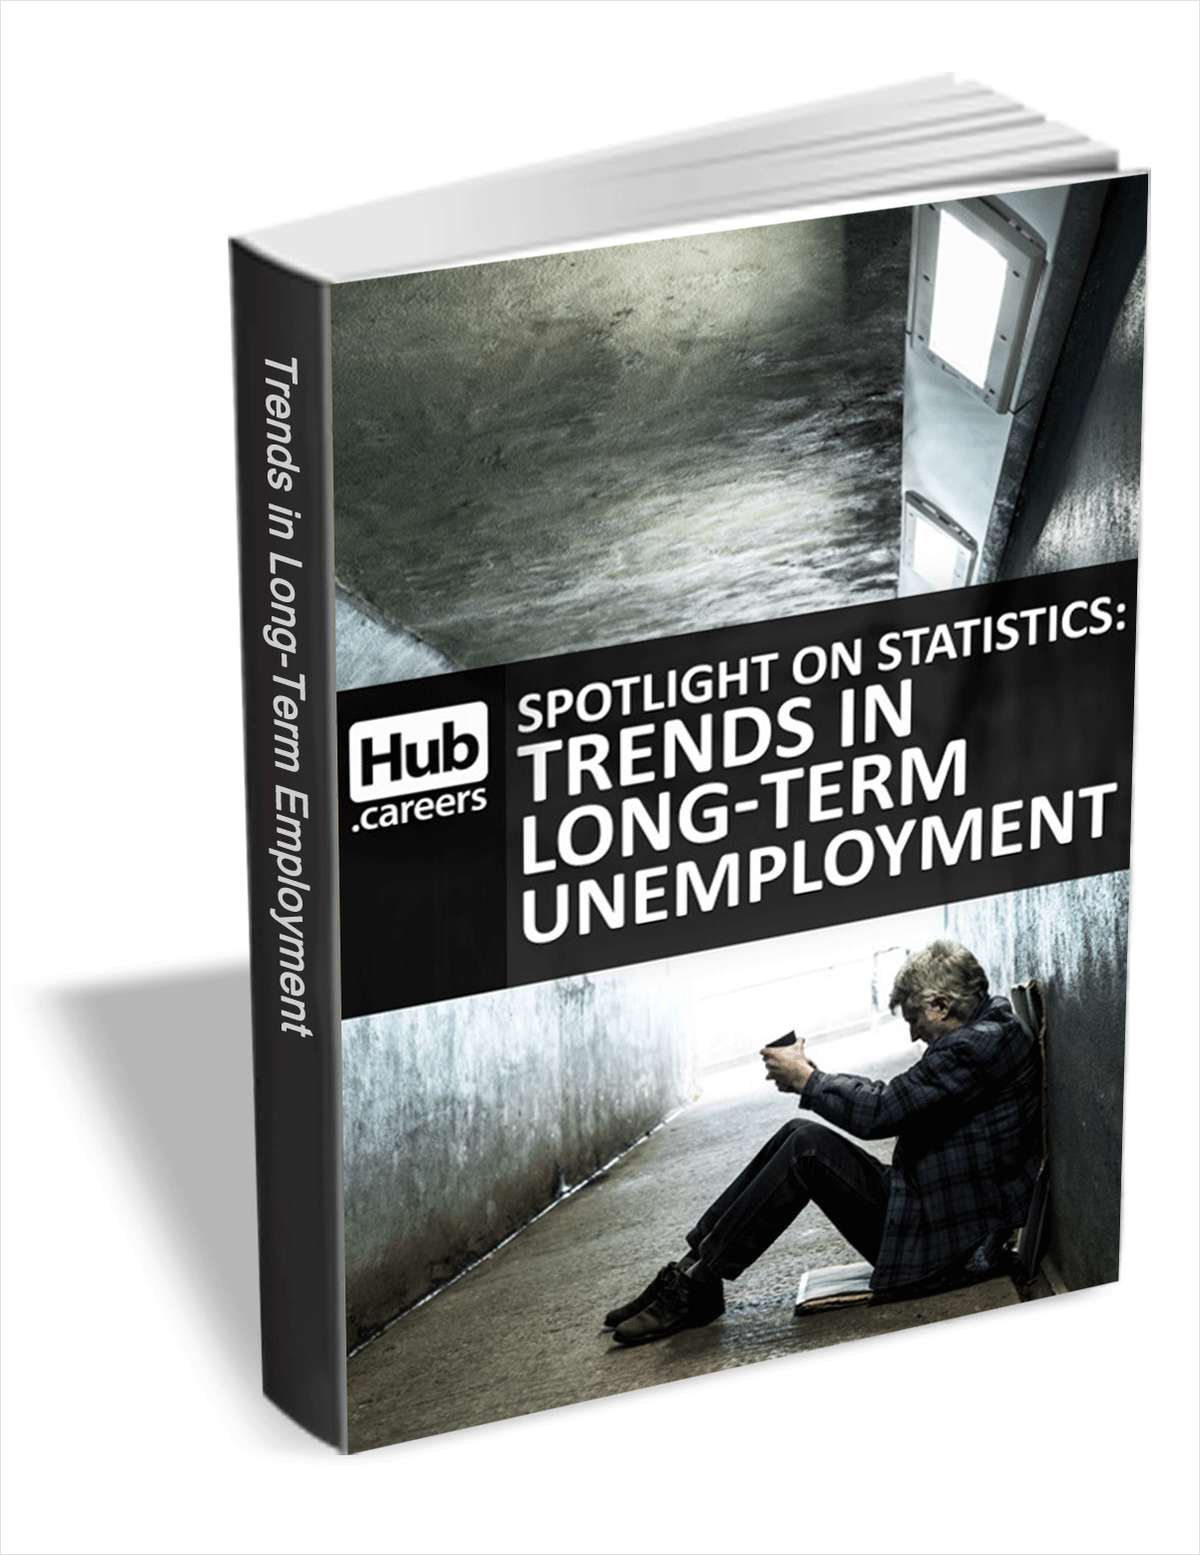 Trends In Long-term Unemployment - Spotlight on Statistics